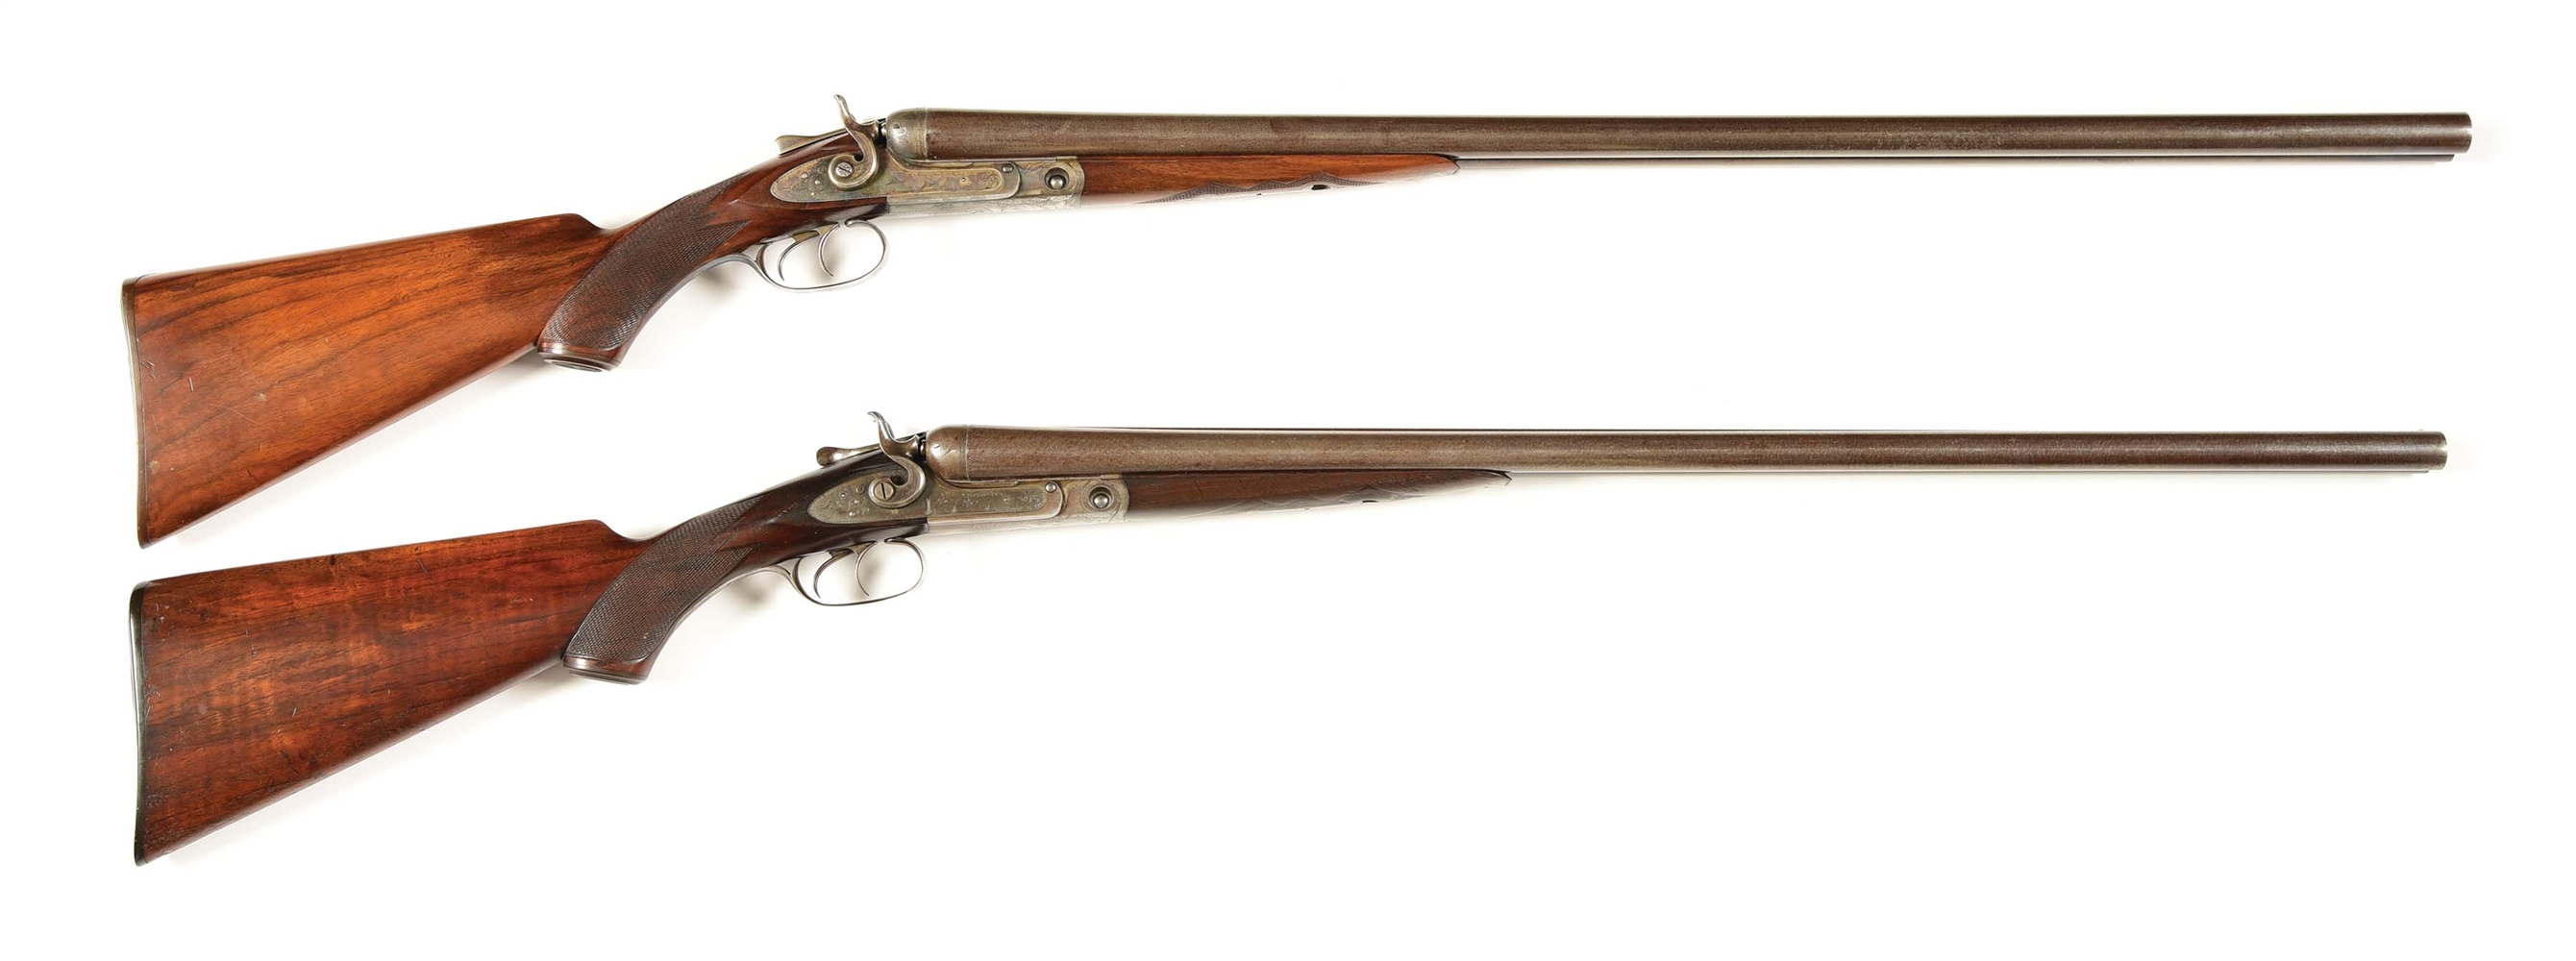 (A) LOT OF TWO: TWO PARKER GRADE 2 12 GAUGE PERCUSSION SHOTGUNS.